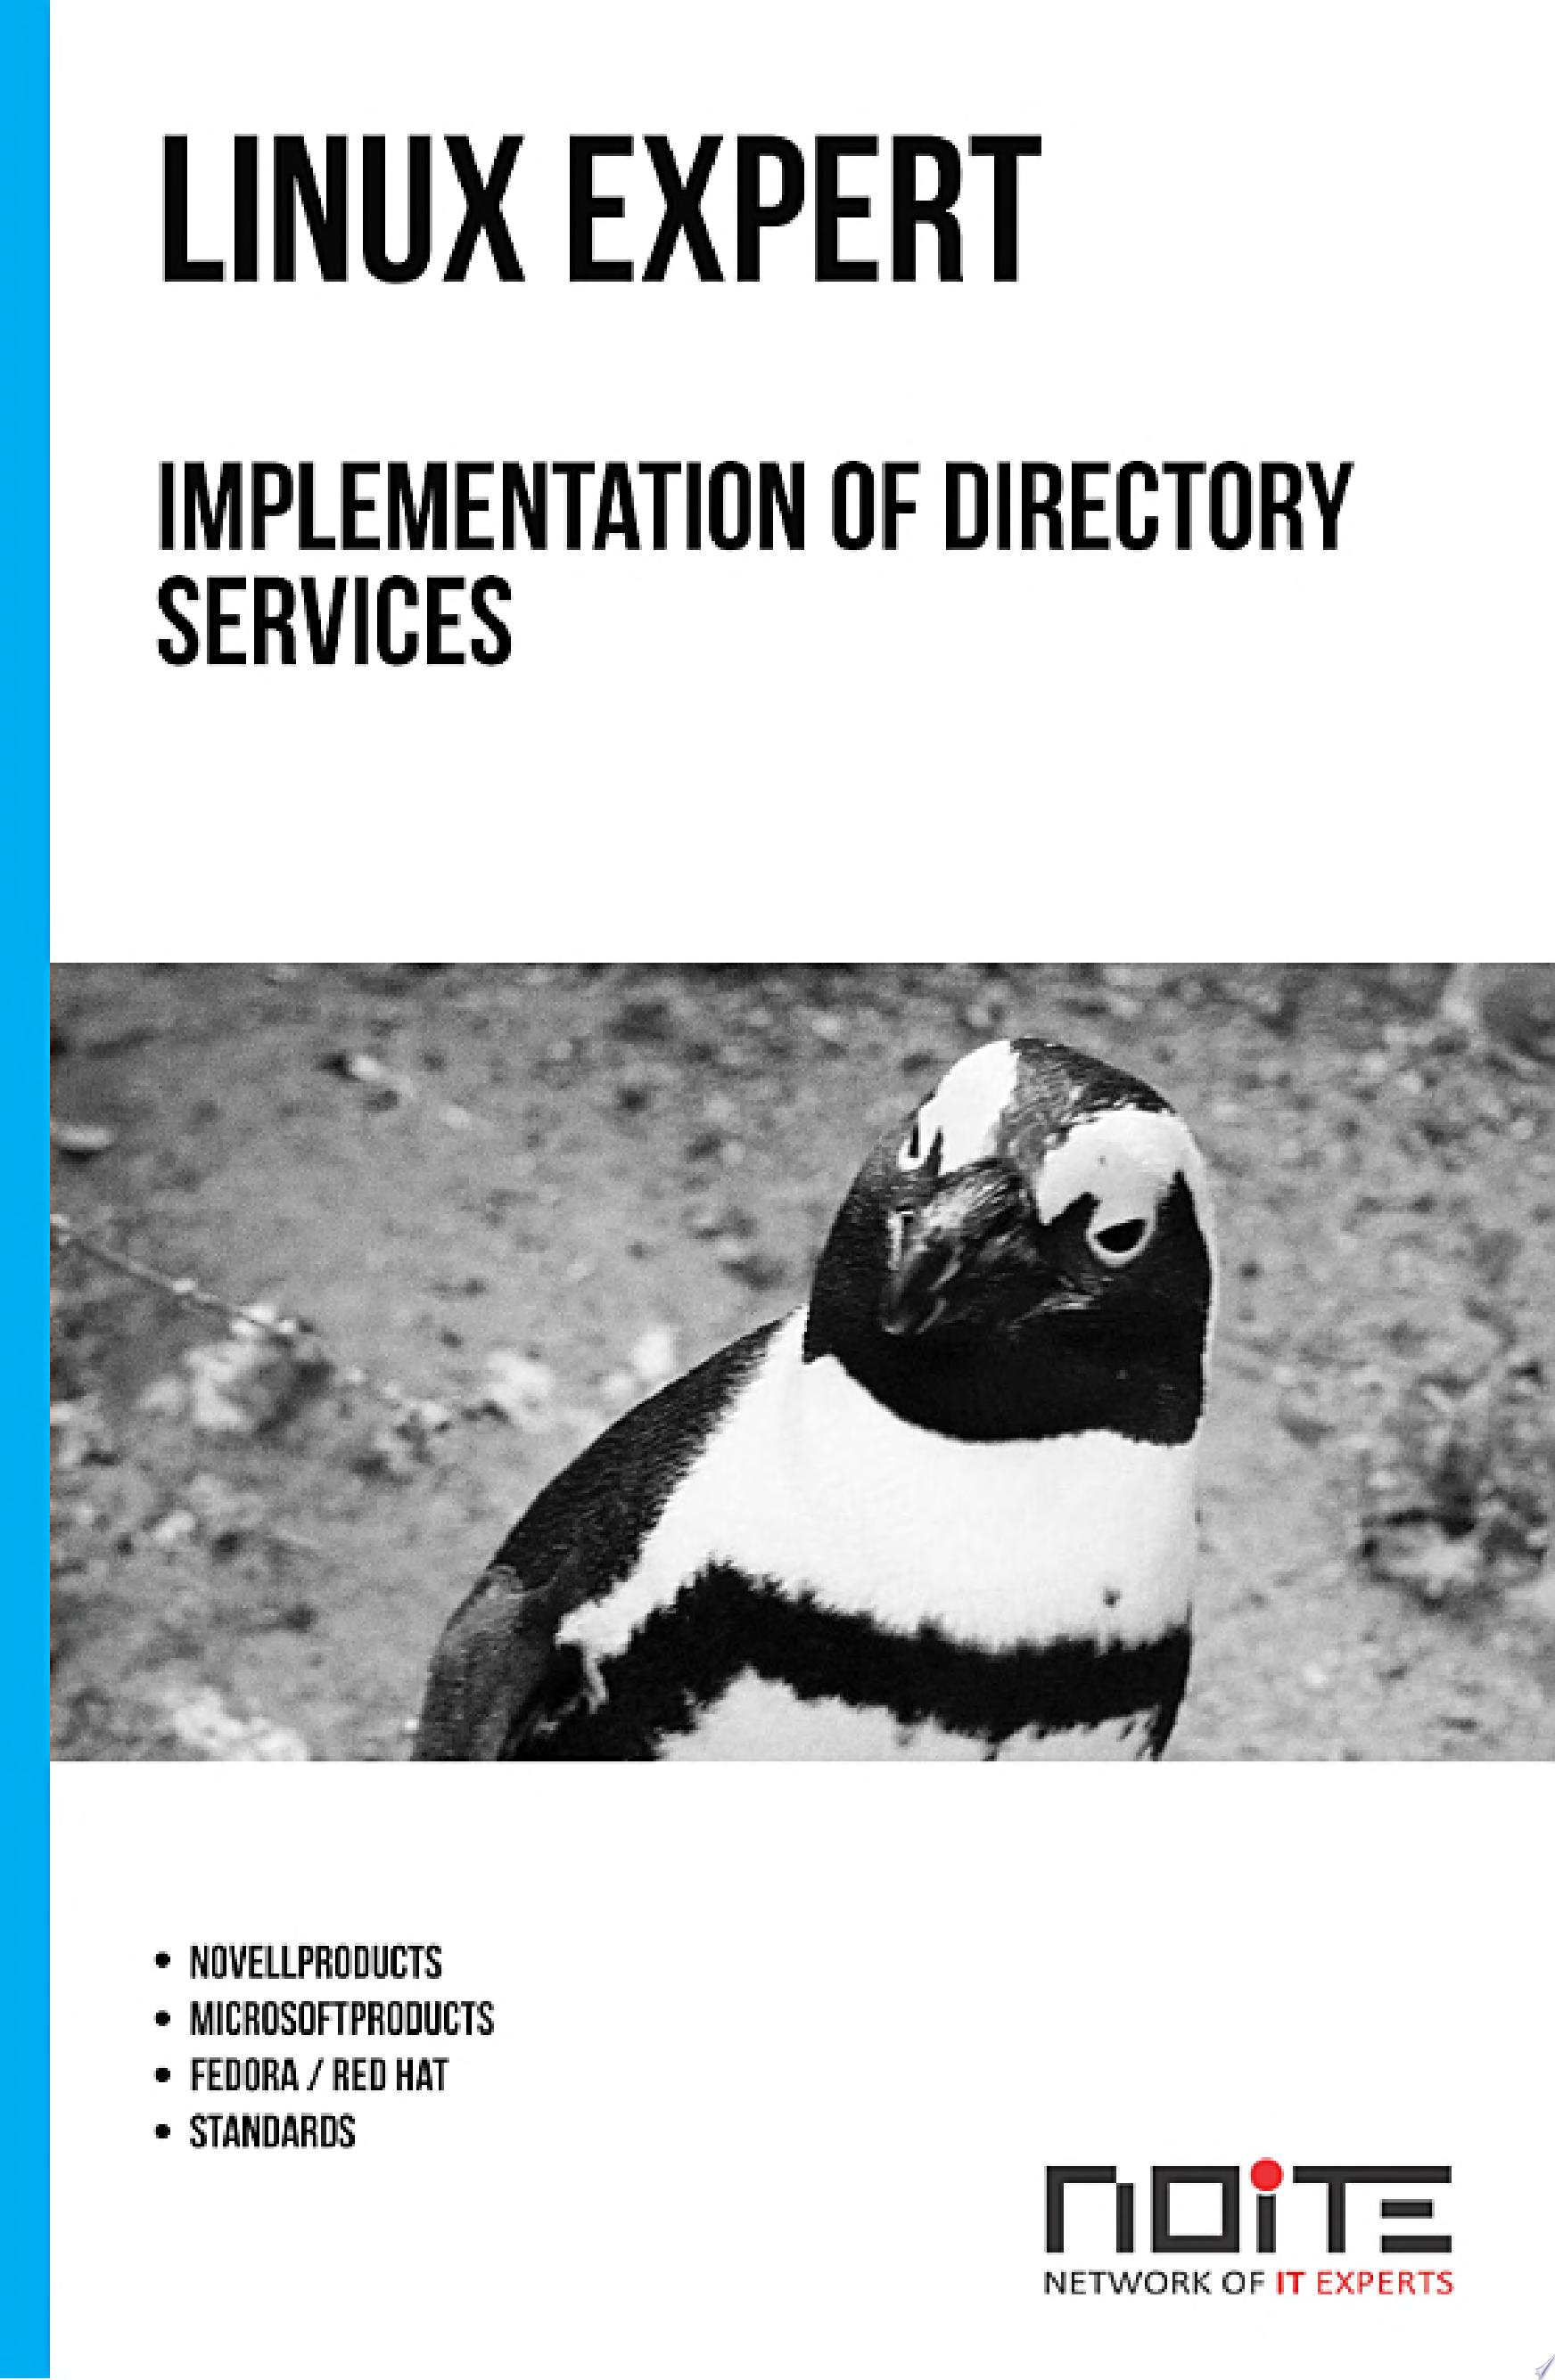 Implementation of directory services